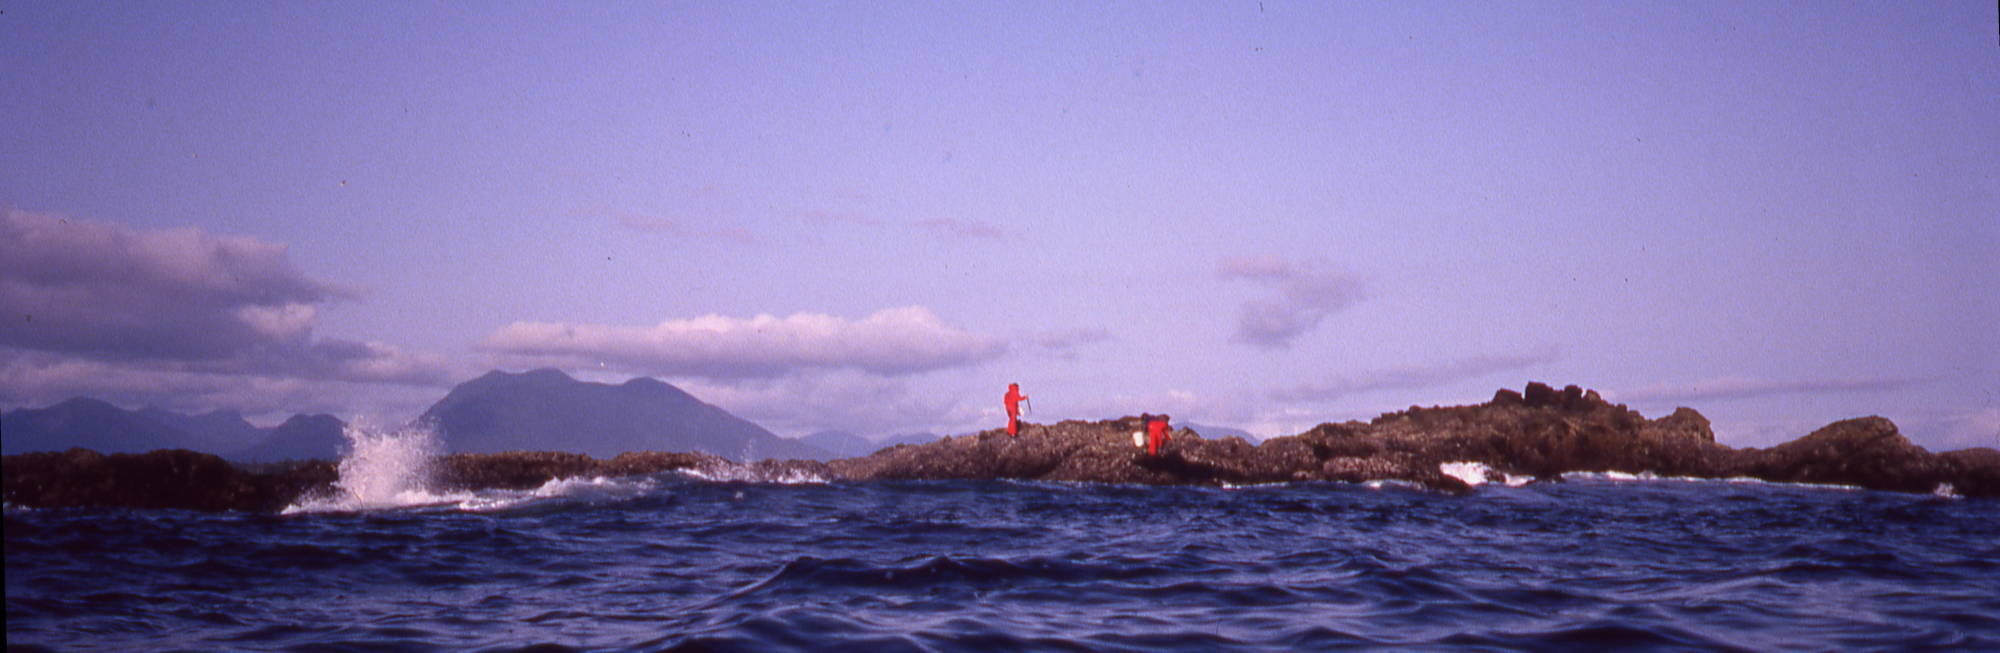 two men in red floater suits standing on Verbeke Reef in the Broken Islands group, British Columbia